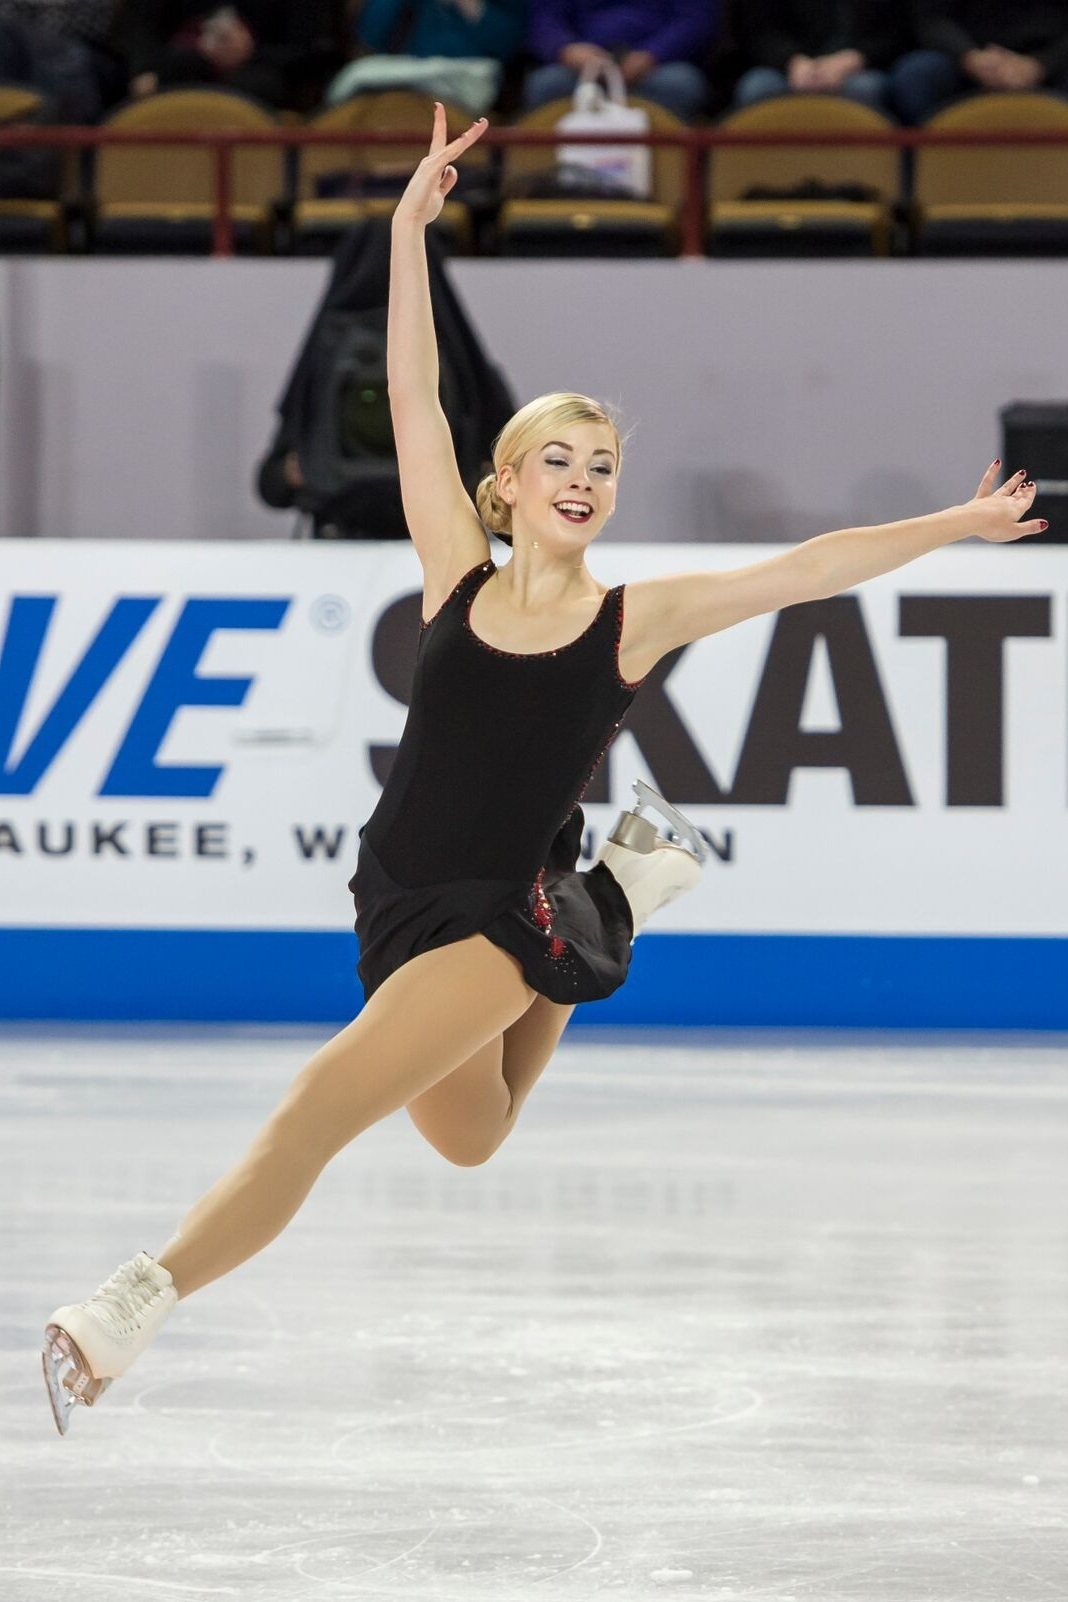 gracie gold olympic bronze medalist ice skating